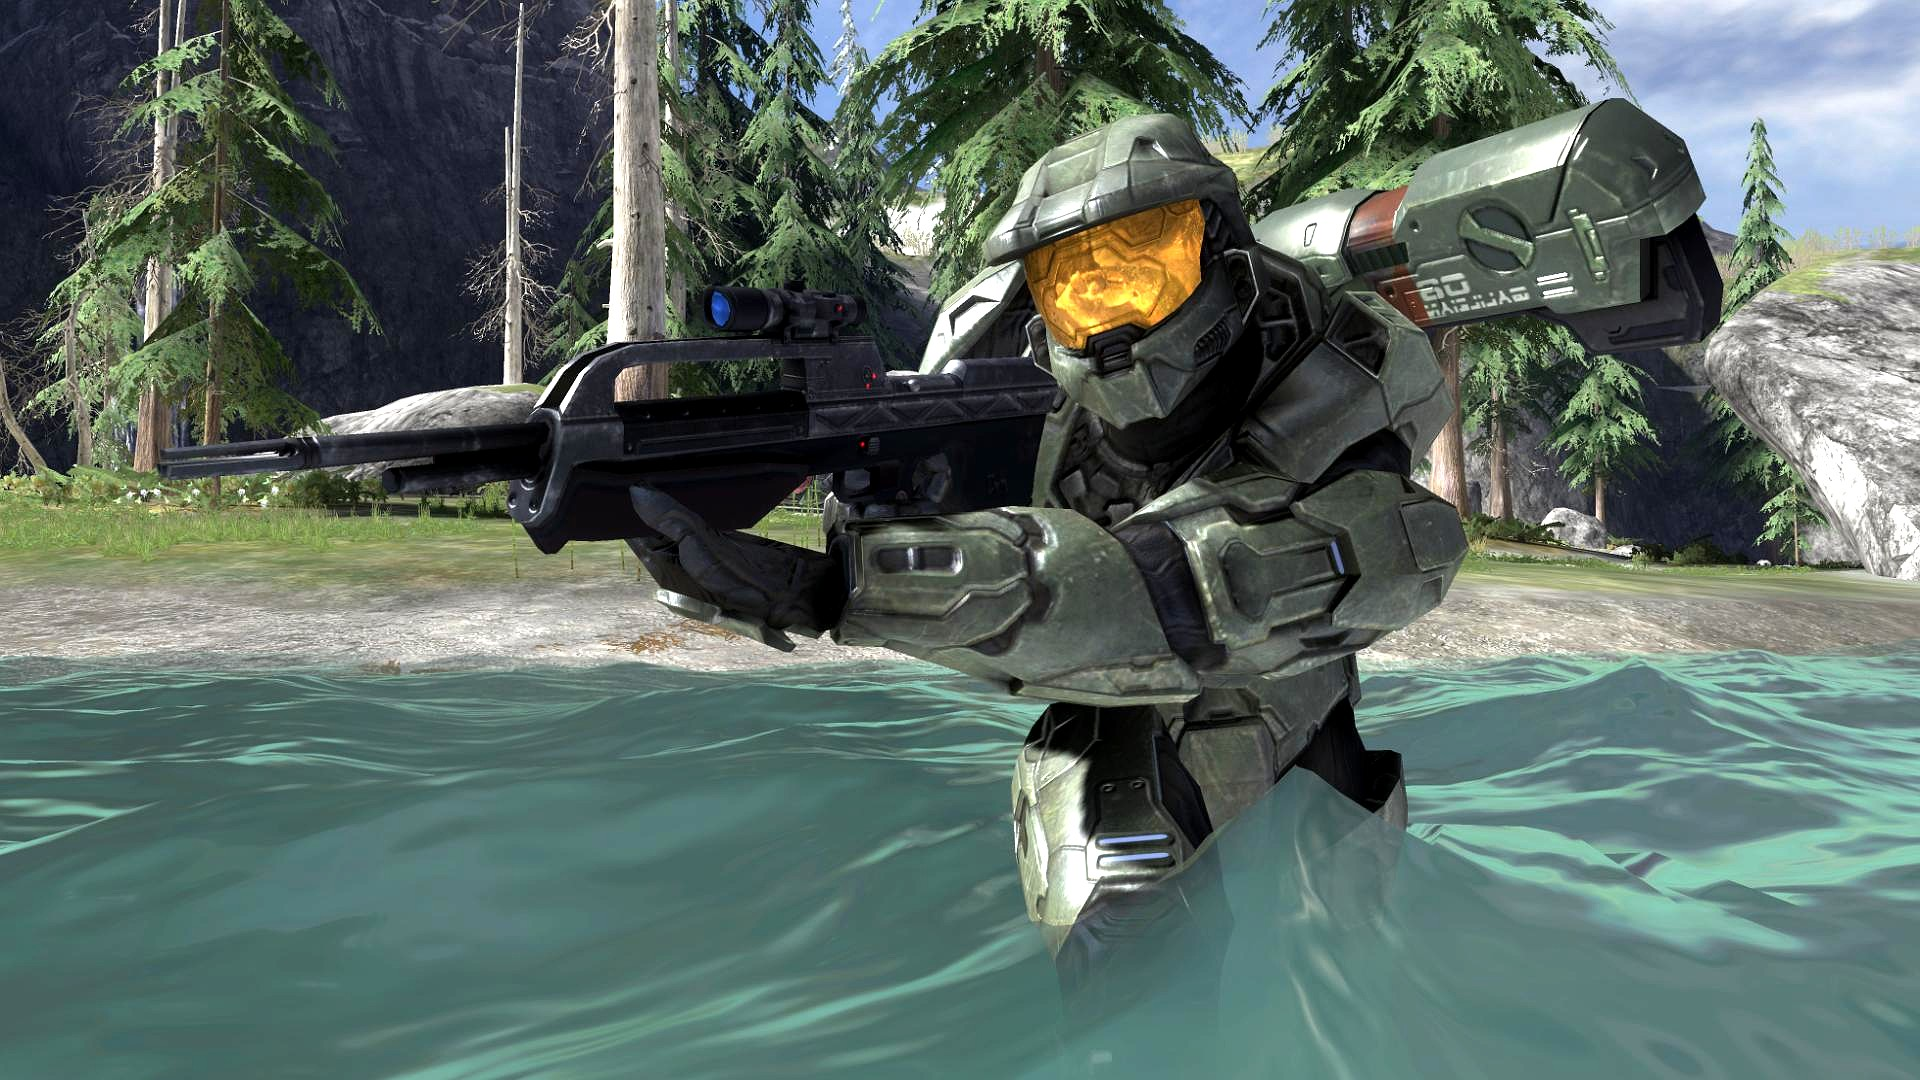 1523556606 8fab45b470 o Halo 3: Water Attack!